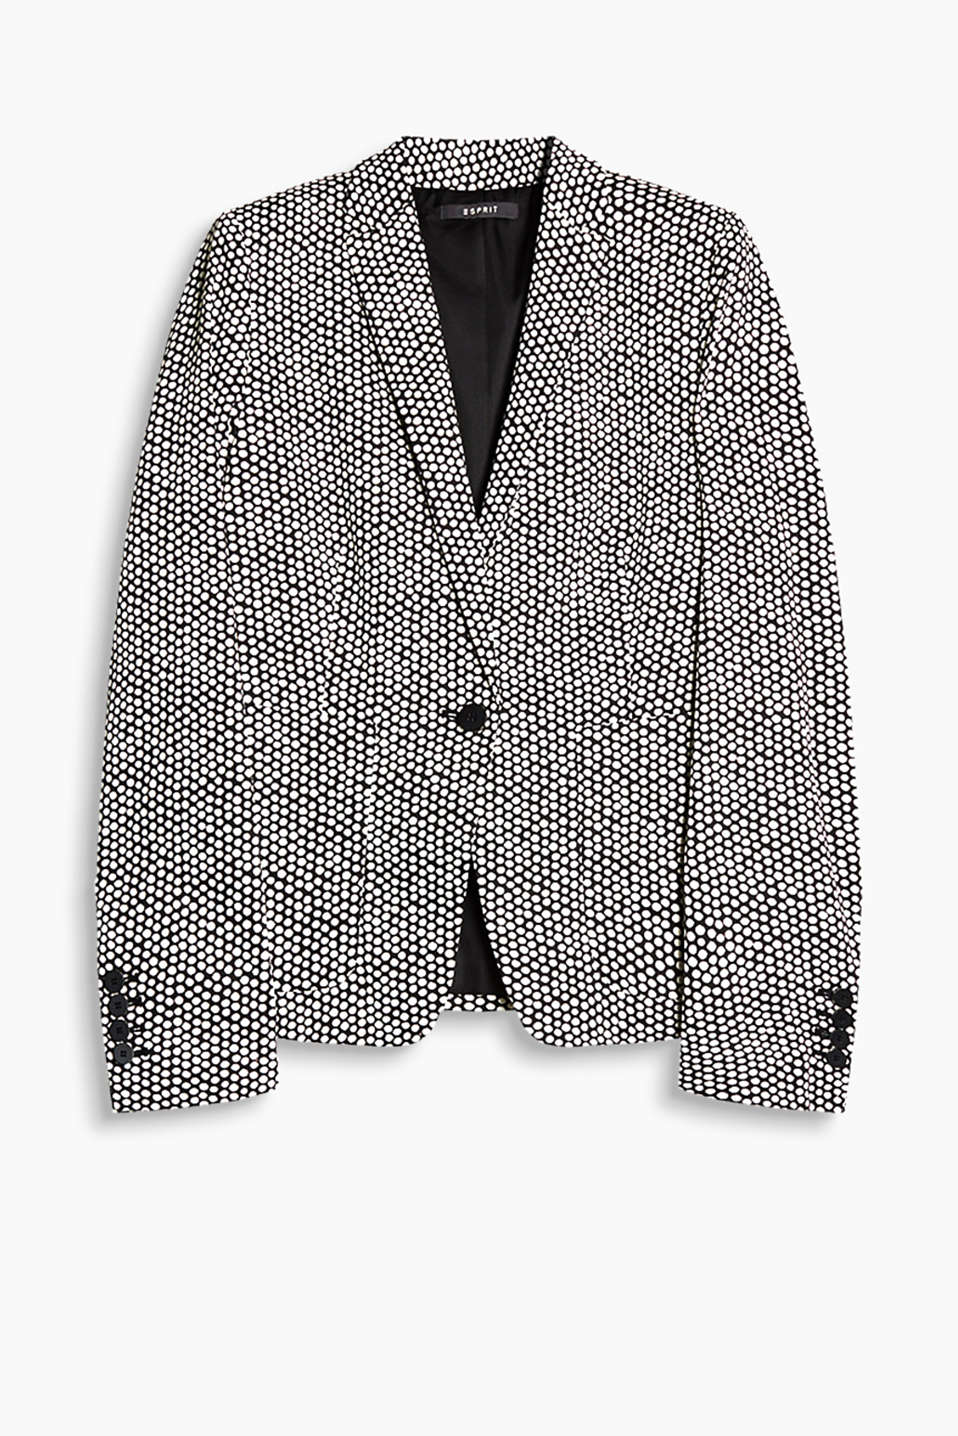 Fitted one-button blazer in stretch satin with a polka dot print